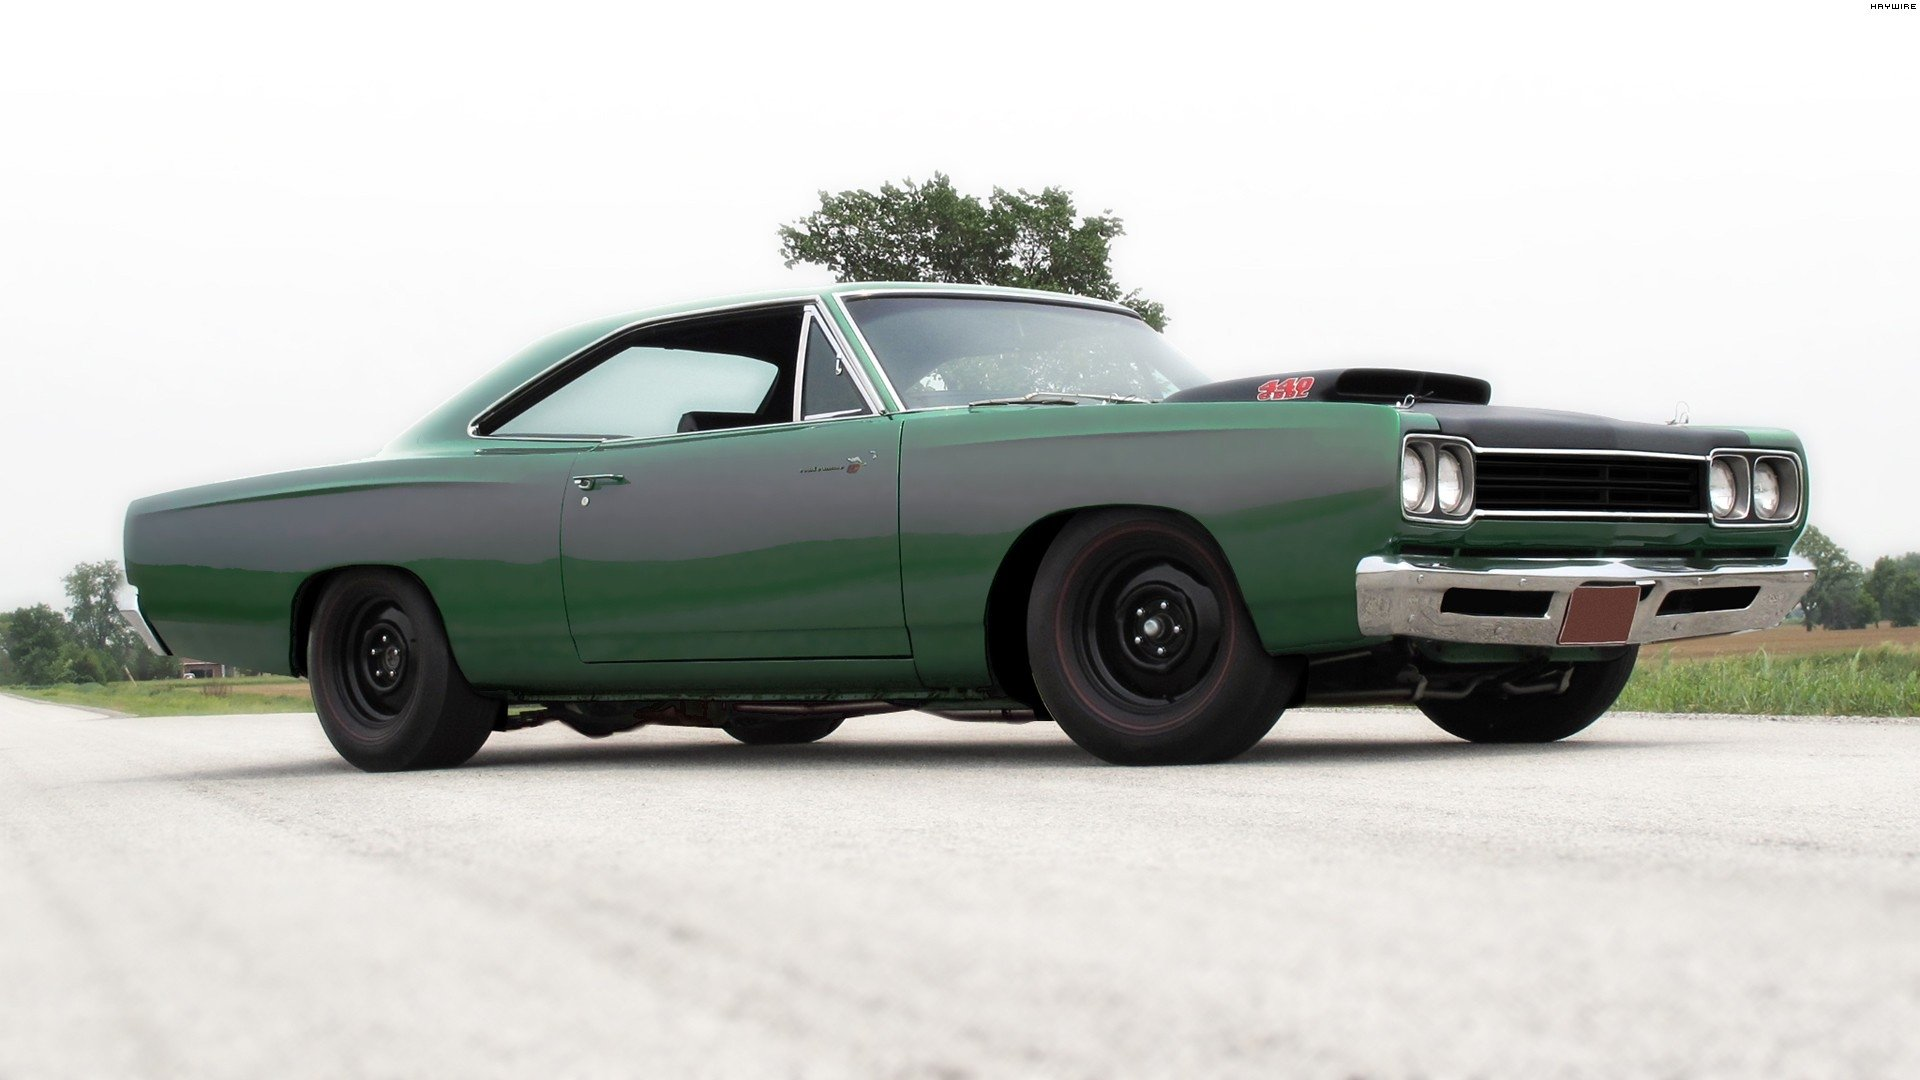 1080p Muscle Car Wallpaper Plymouth Road Runner Full Hd Wallpaper And Background